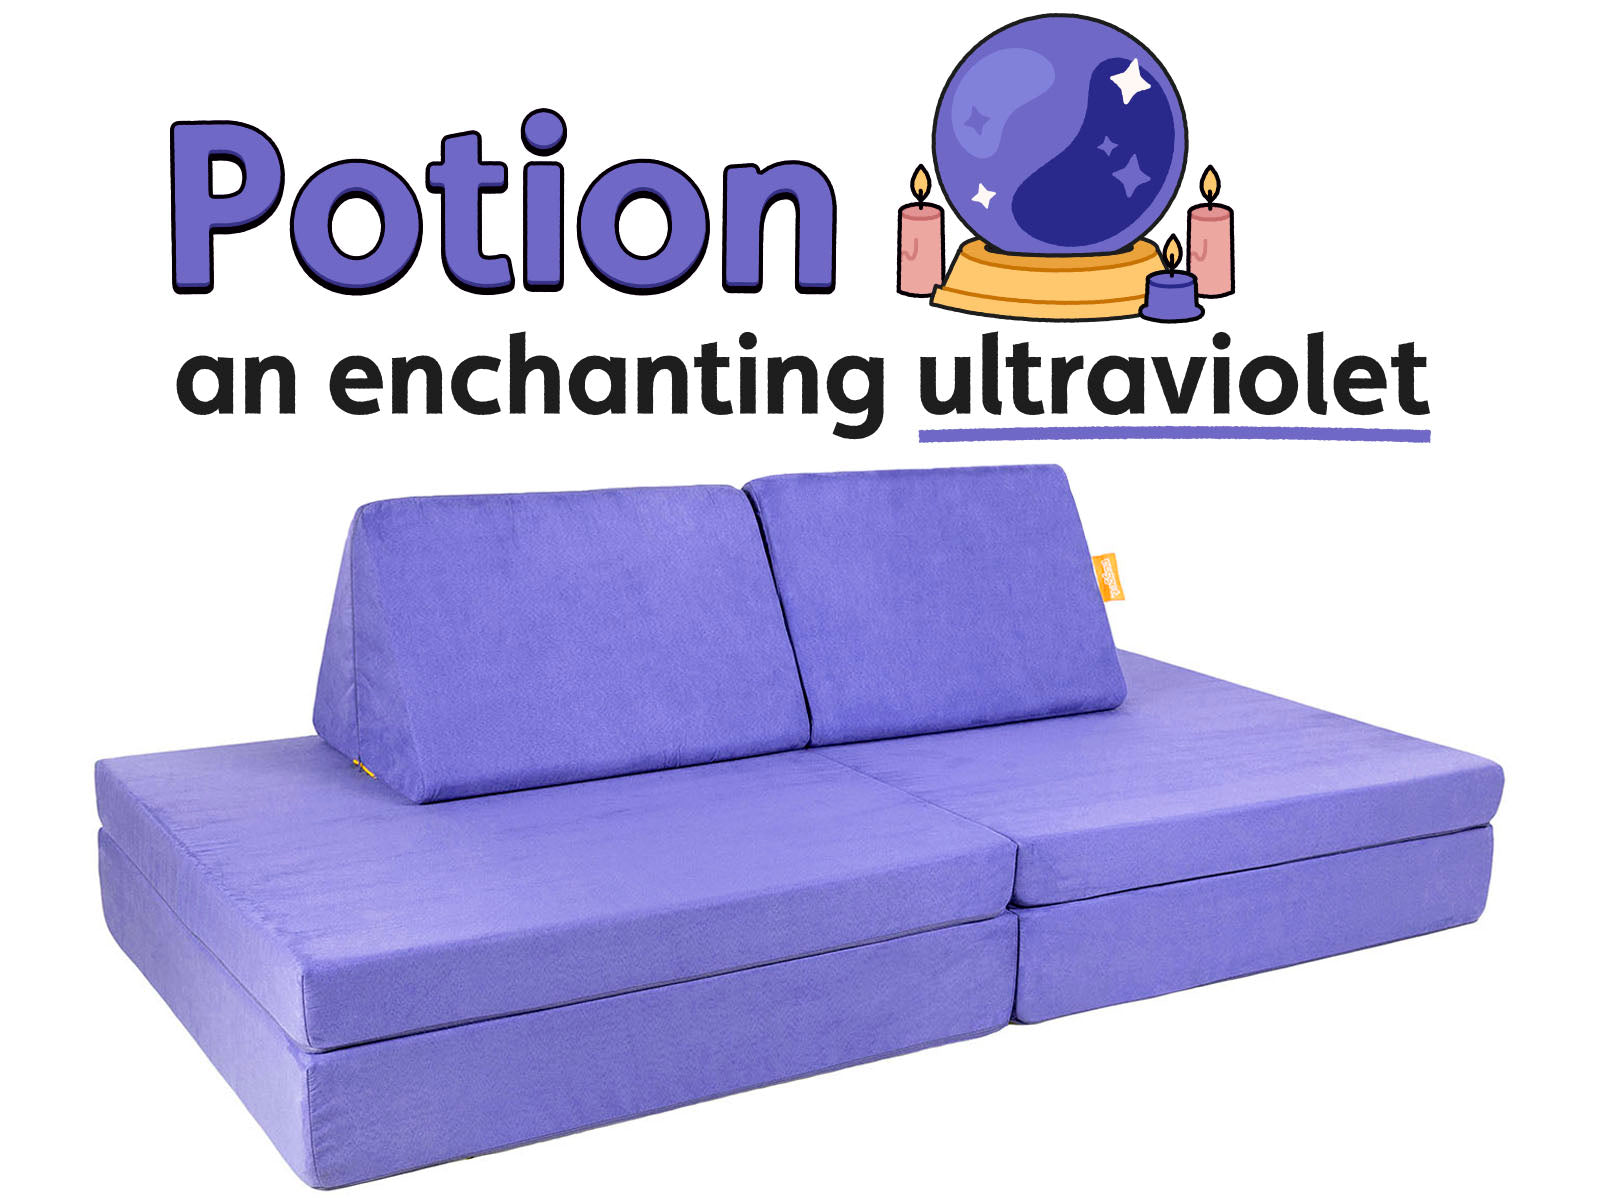 Word art illustration: Potion, an enchanting ultraviolet, with Potion Nugget couch on white background